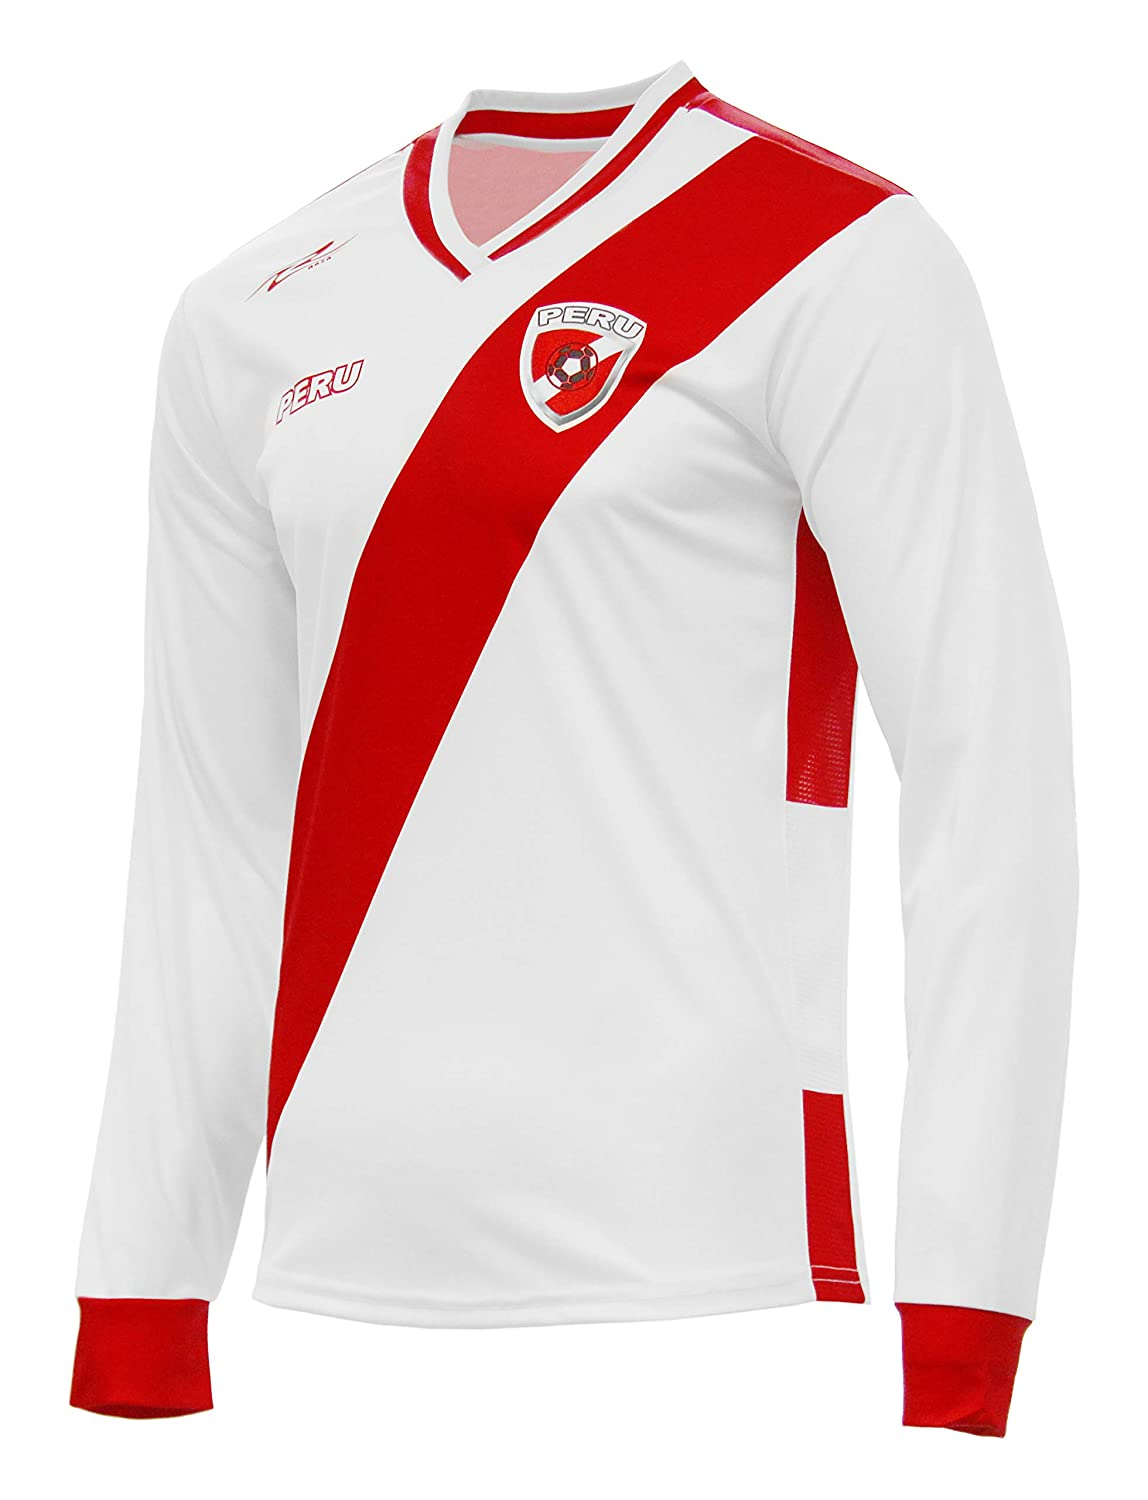 Amazon.com: Peru Jersey New Arza Soccer White for Men Long Sleeve 100% Polyester: Clothing